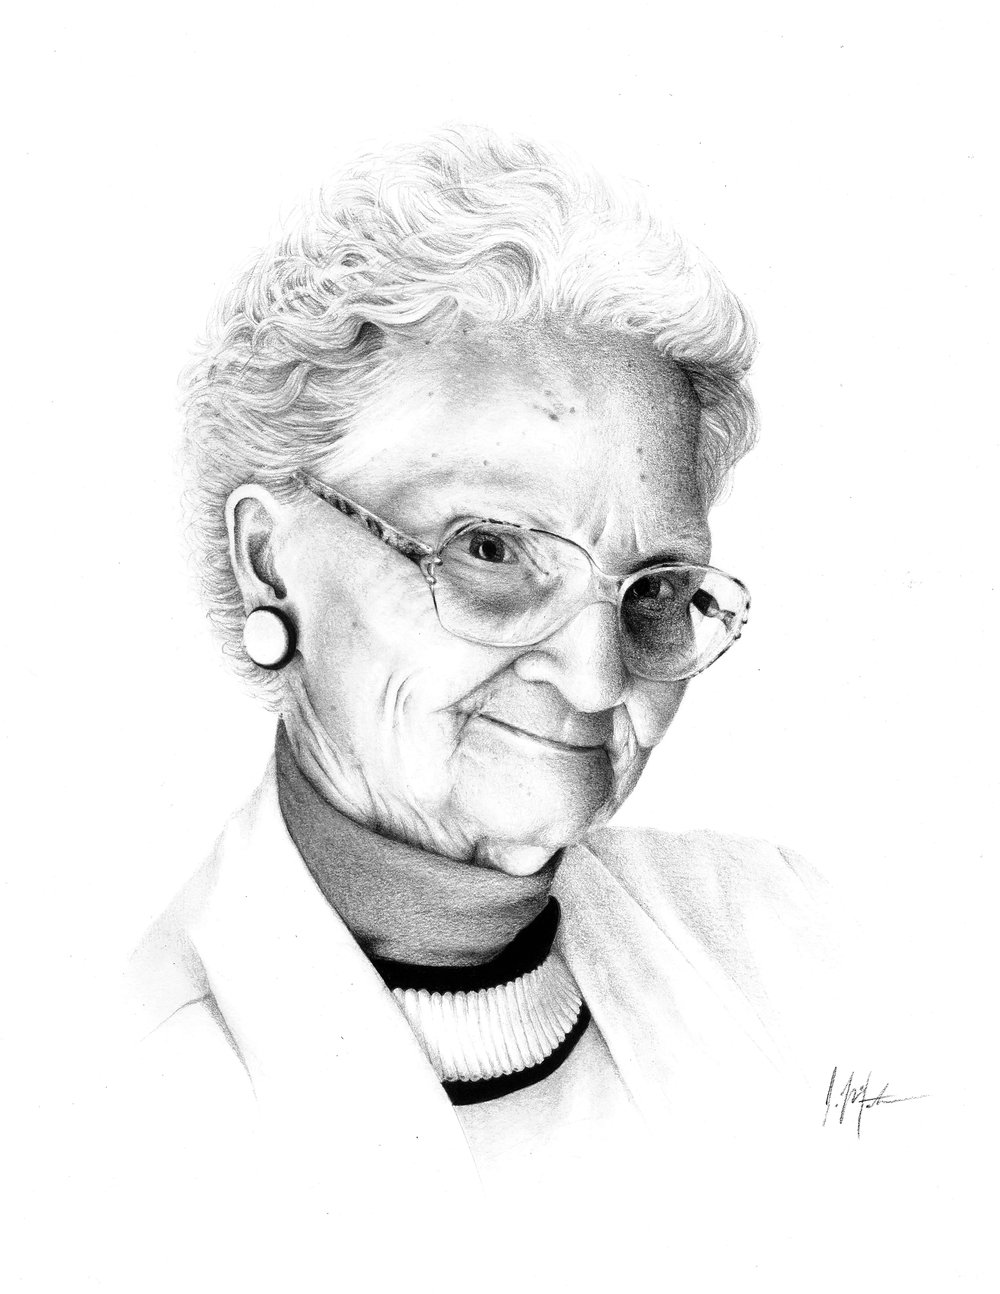 ADA BALDWIN COMMEMORATIVE DRAWING